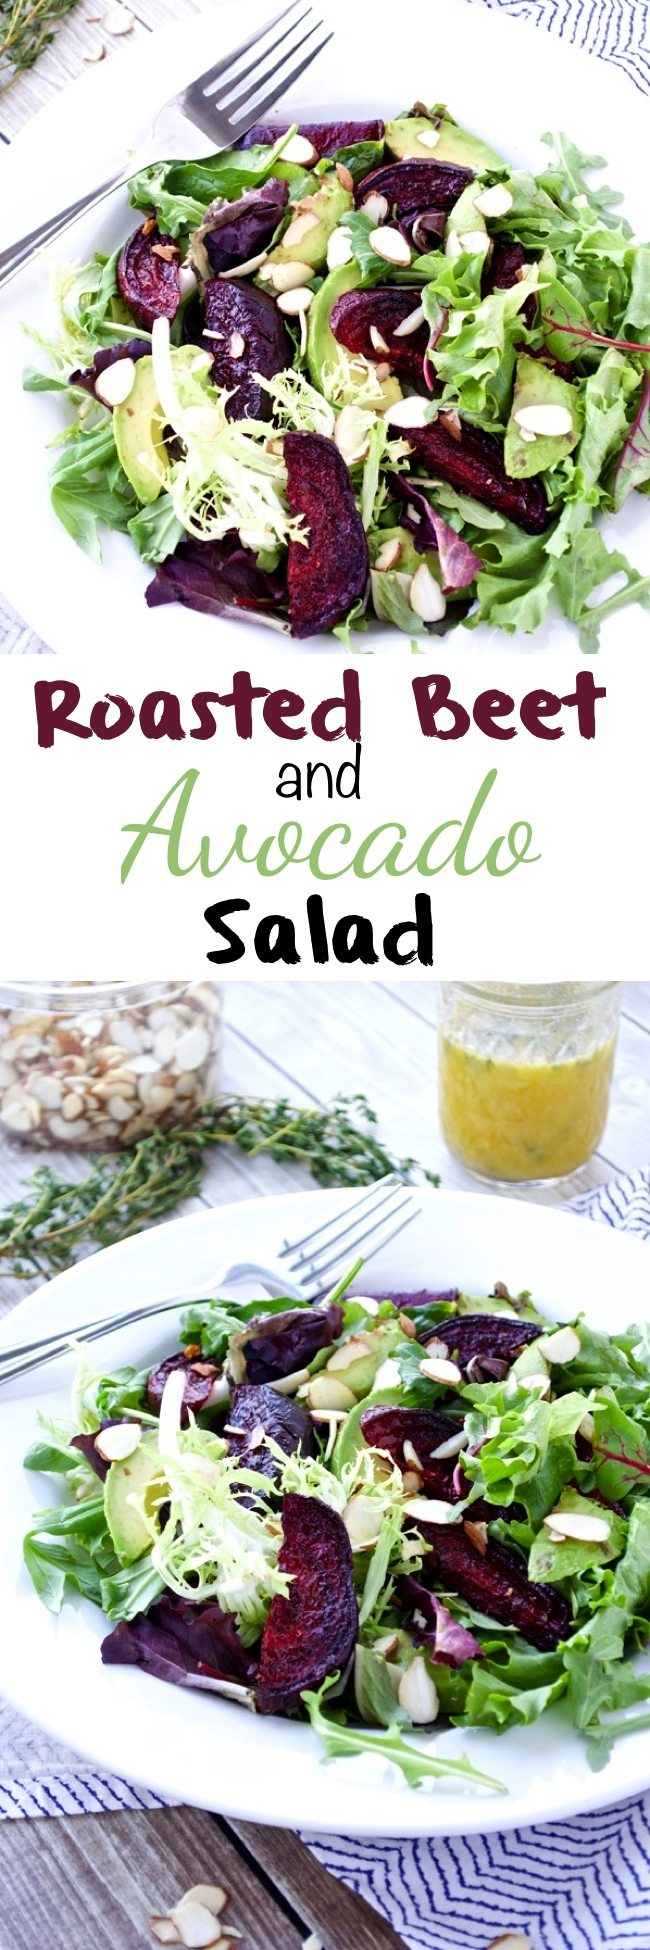 Roasted Beet and Avocado Salad Pin